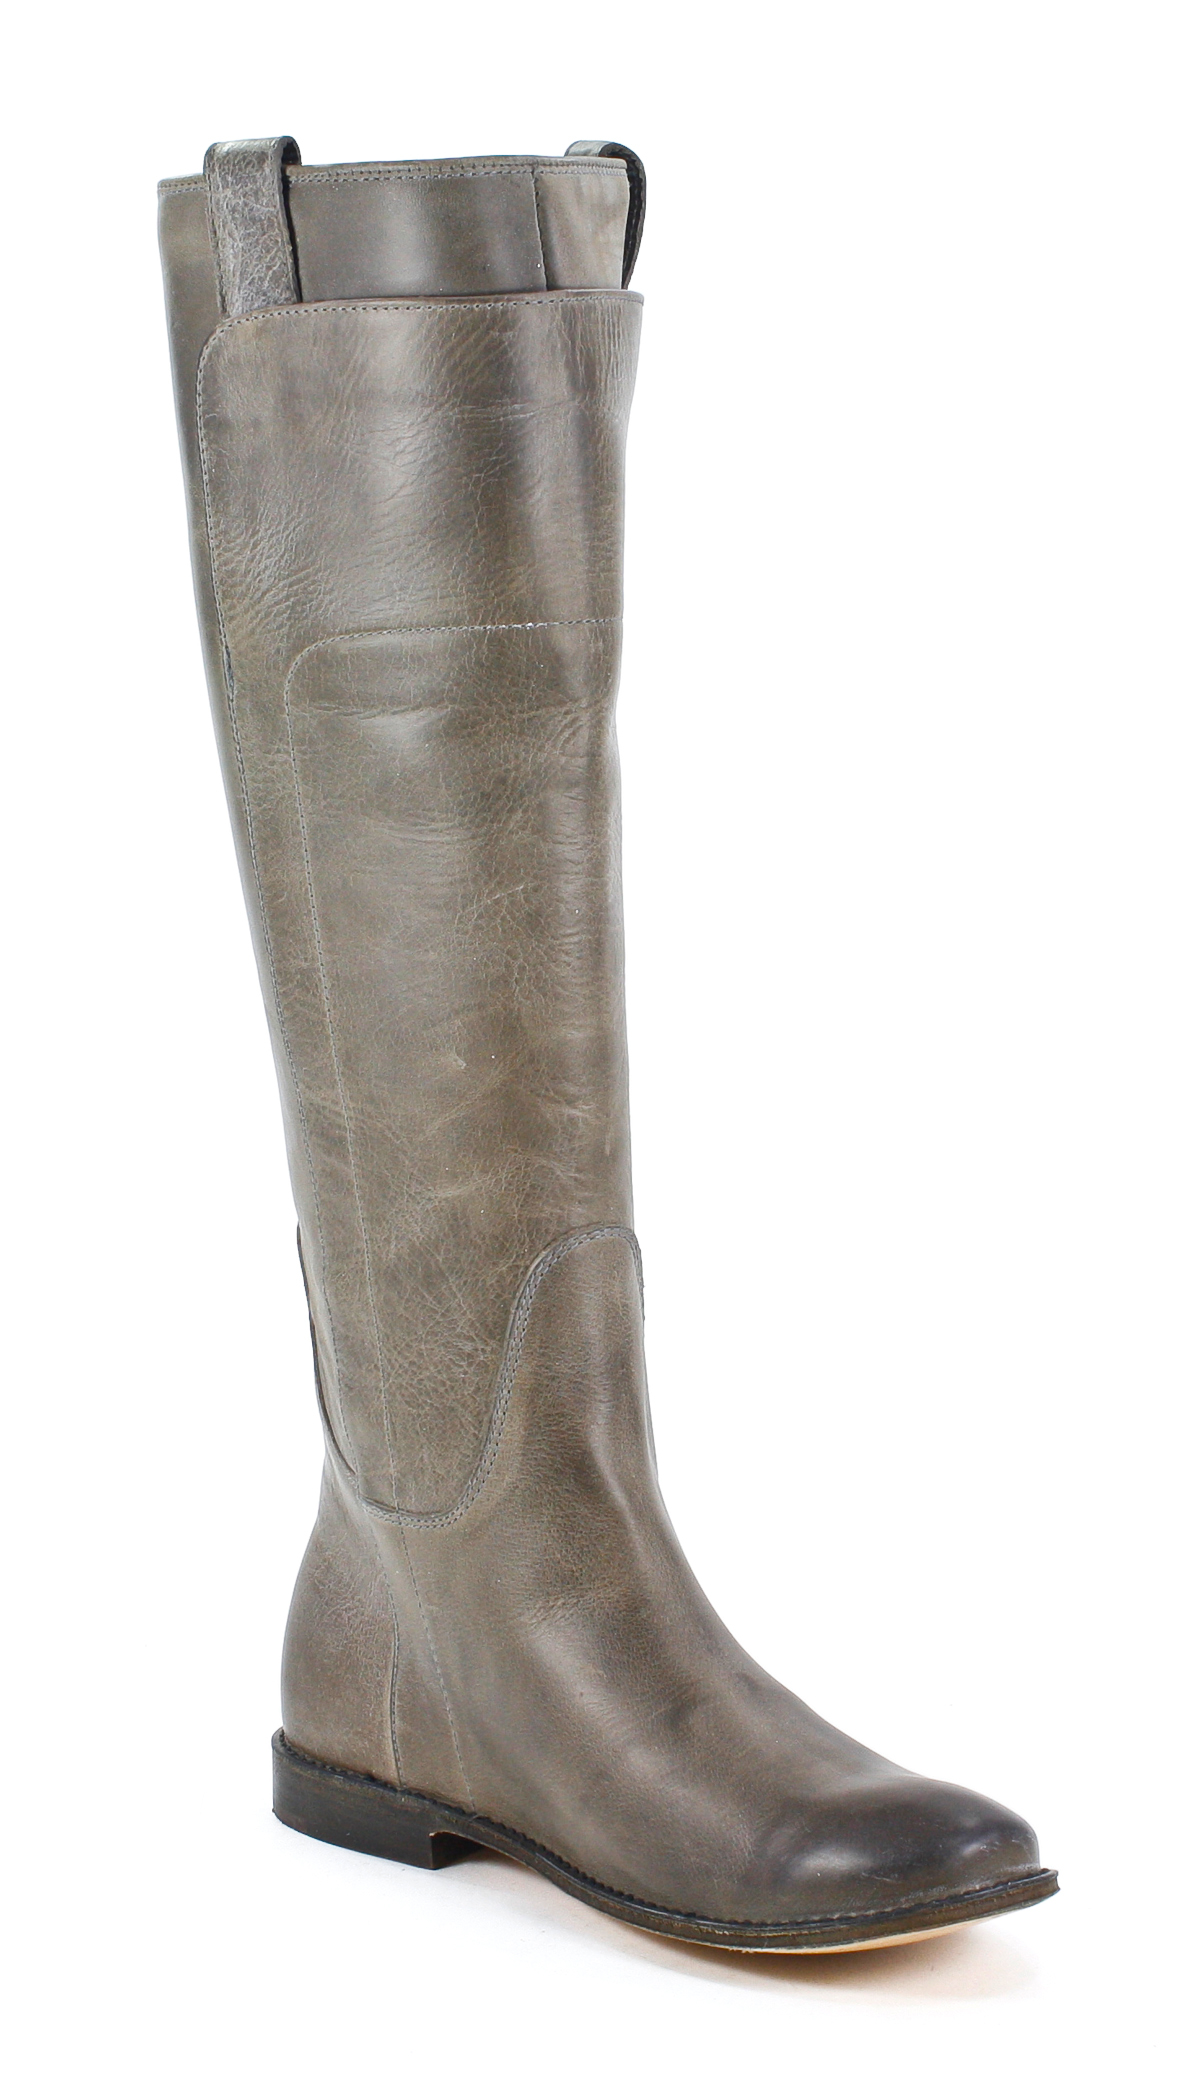 frye womens leather grey fashion boot 9